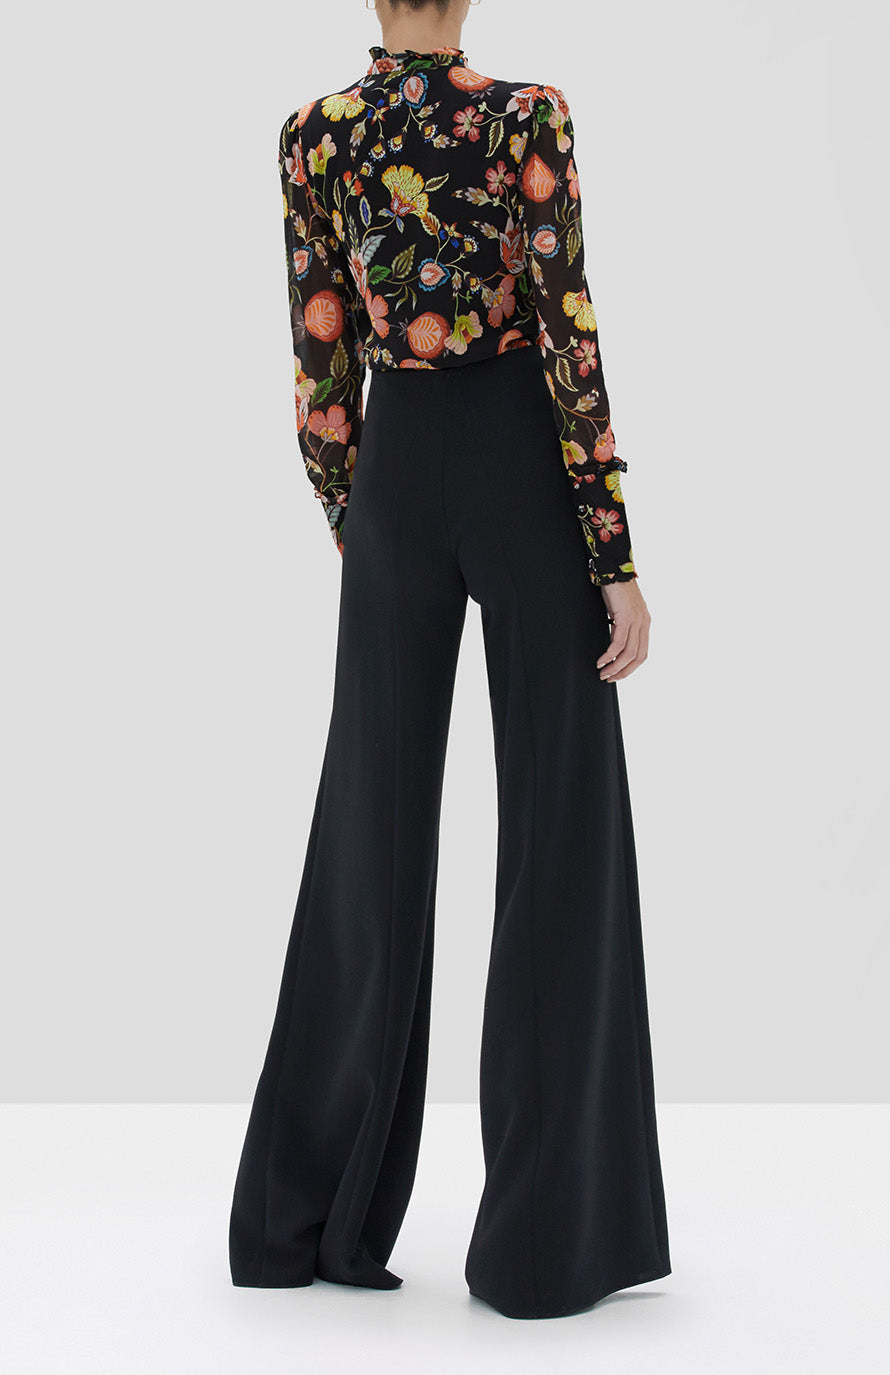 Alexis Elodie Top in Black Nouveau and Irvine Pant Black from the Fall Winter 2019 Ready To Wear Collection - Rear View